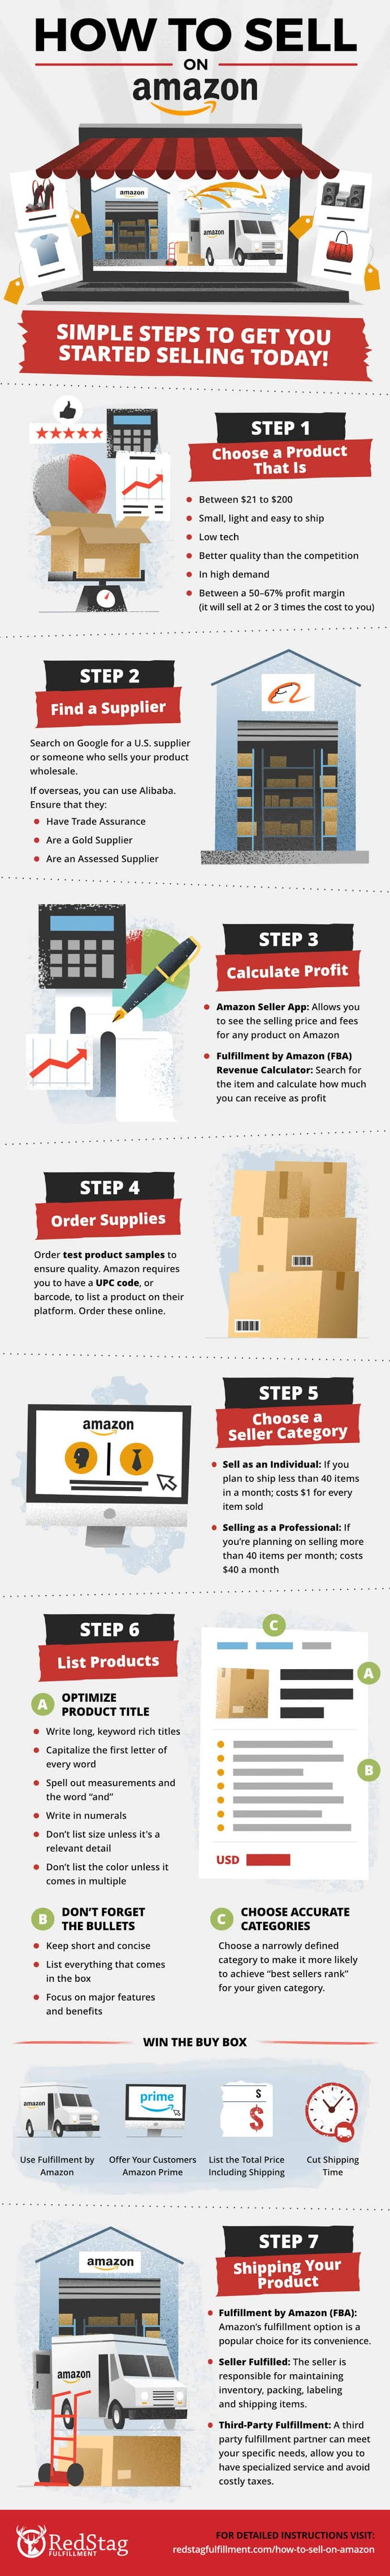 How to Sell on Amazon #infographic #How to Sell #Amazon #Sell on Amazon #Amazon